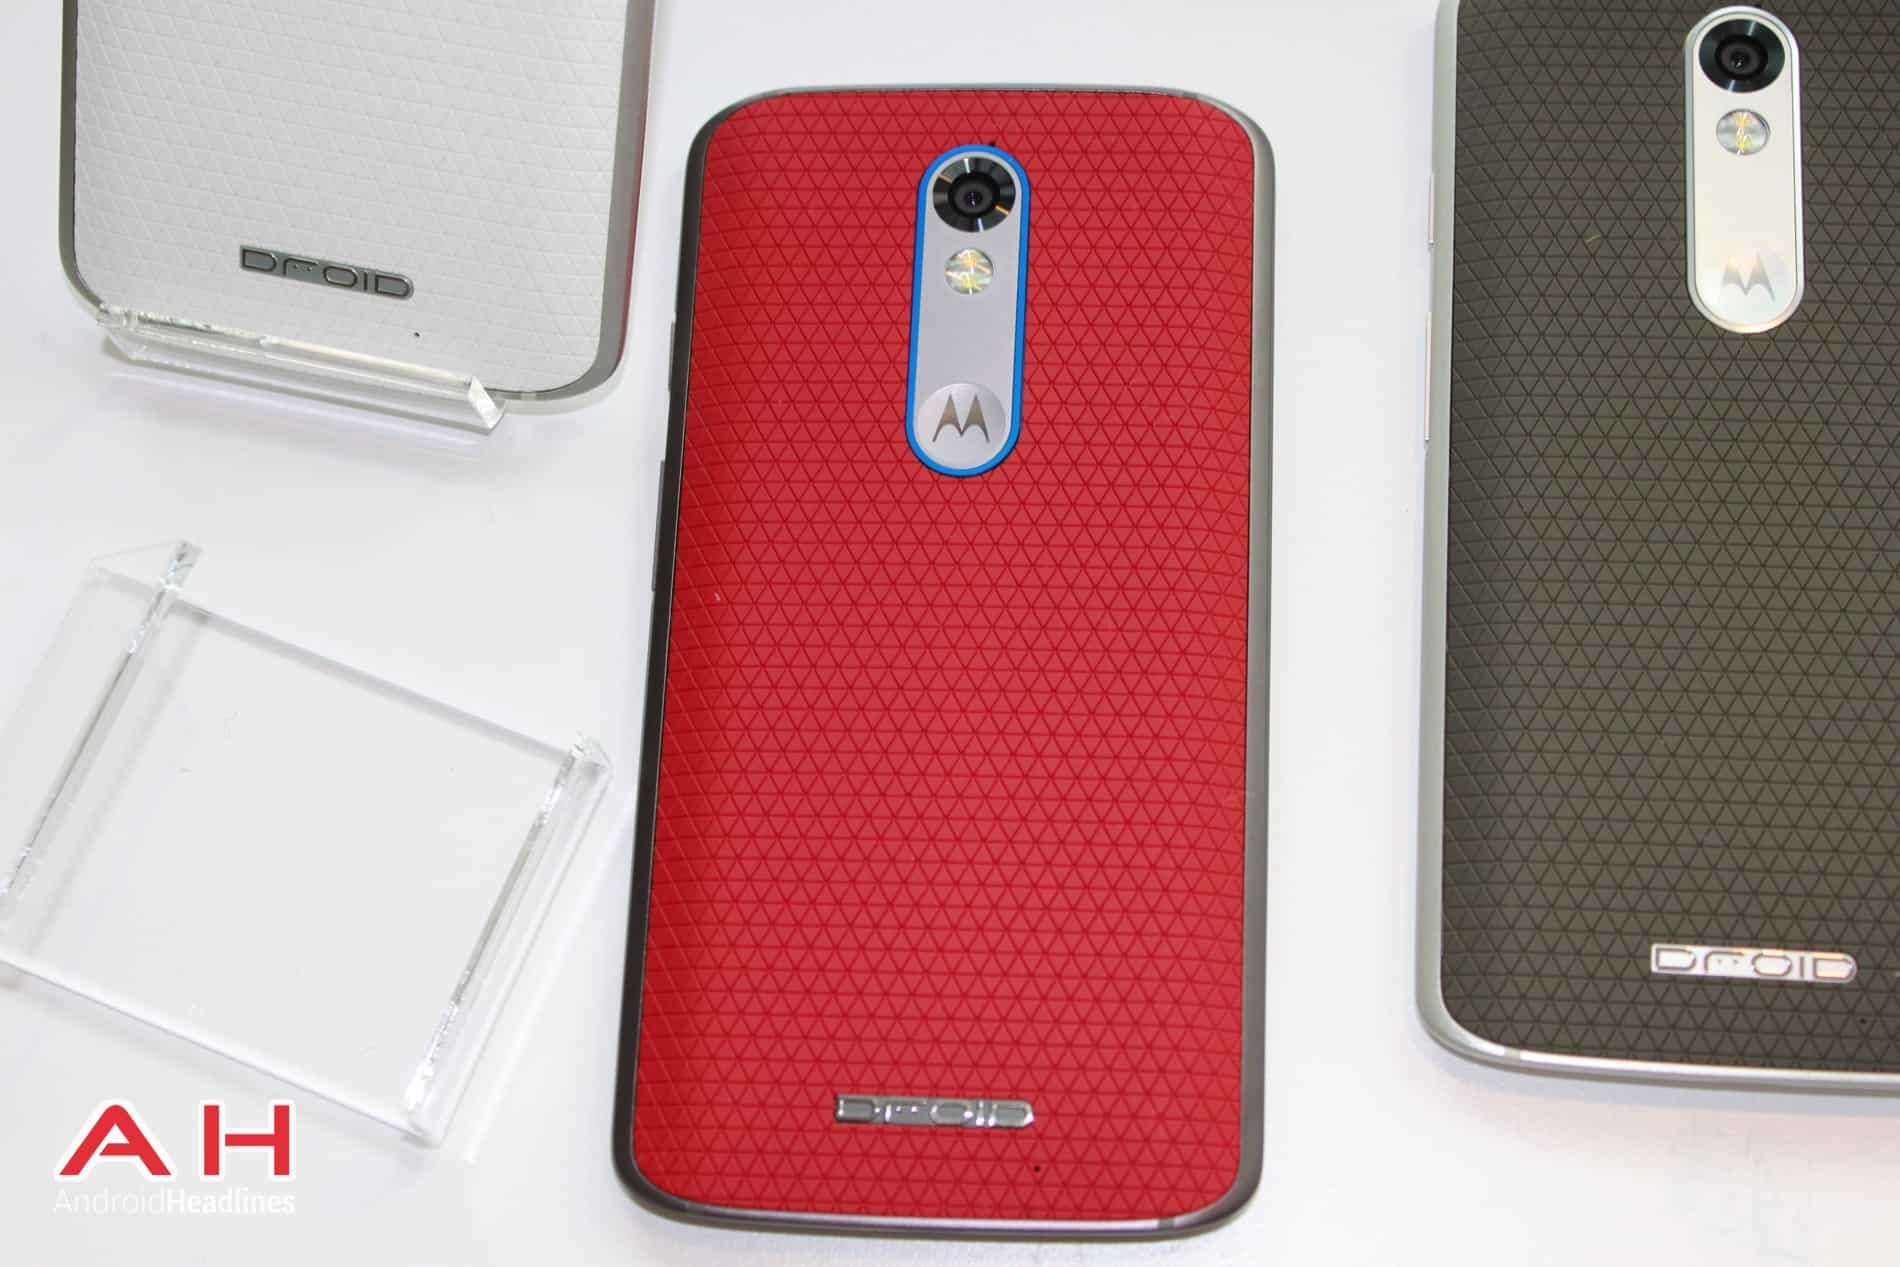 Droid Turbo 2 Hands On 18